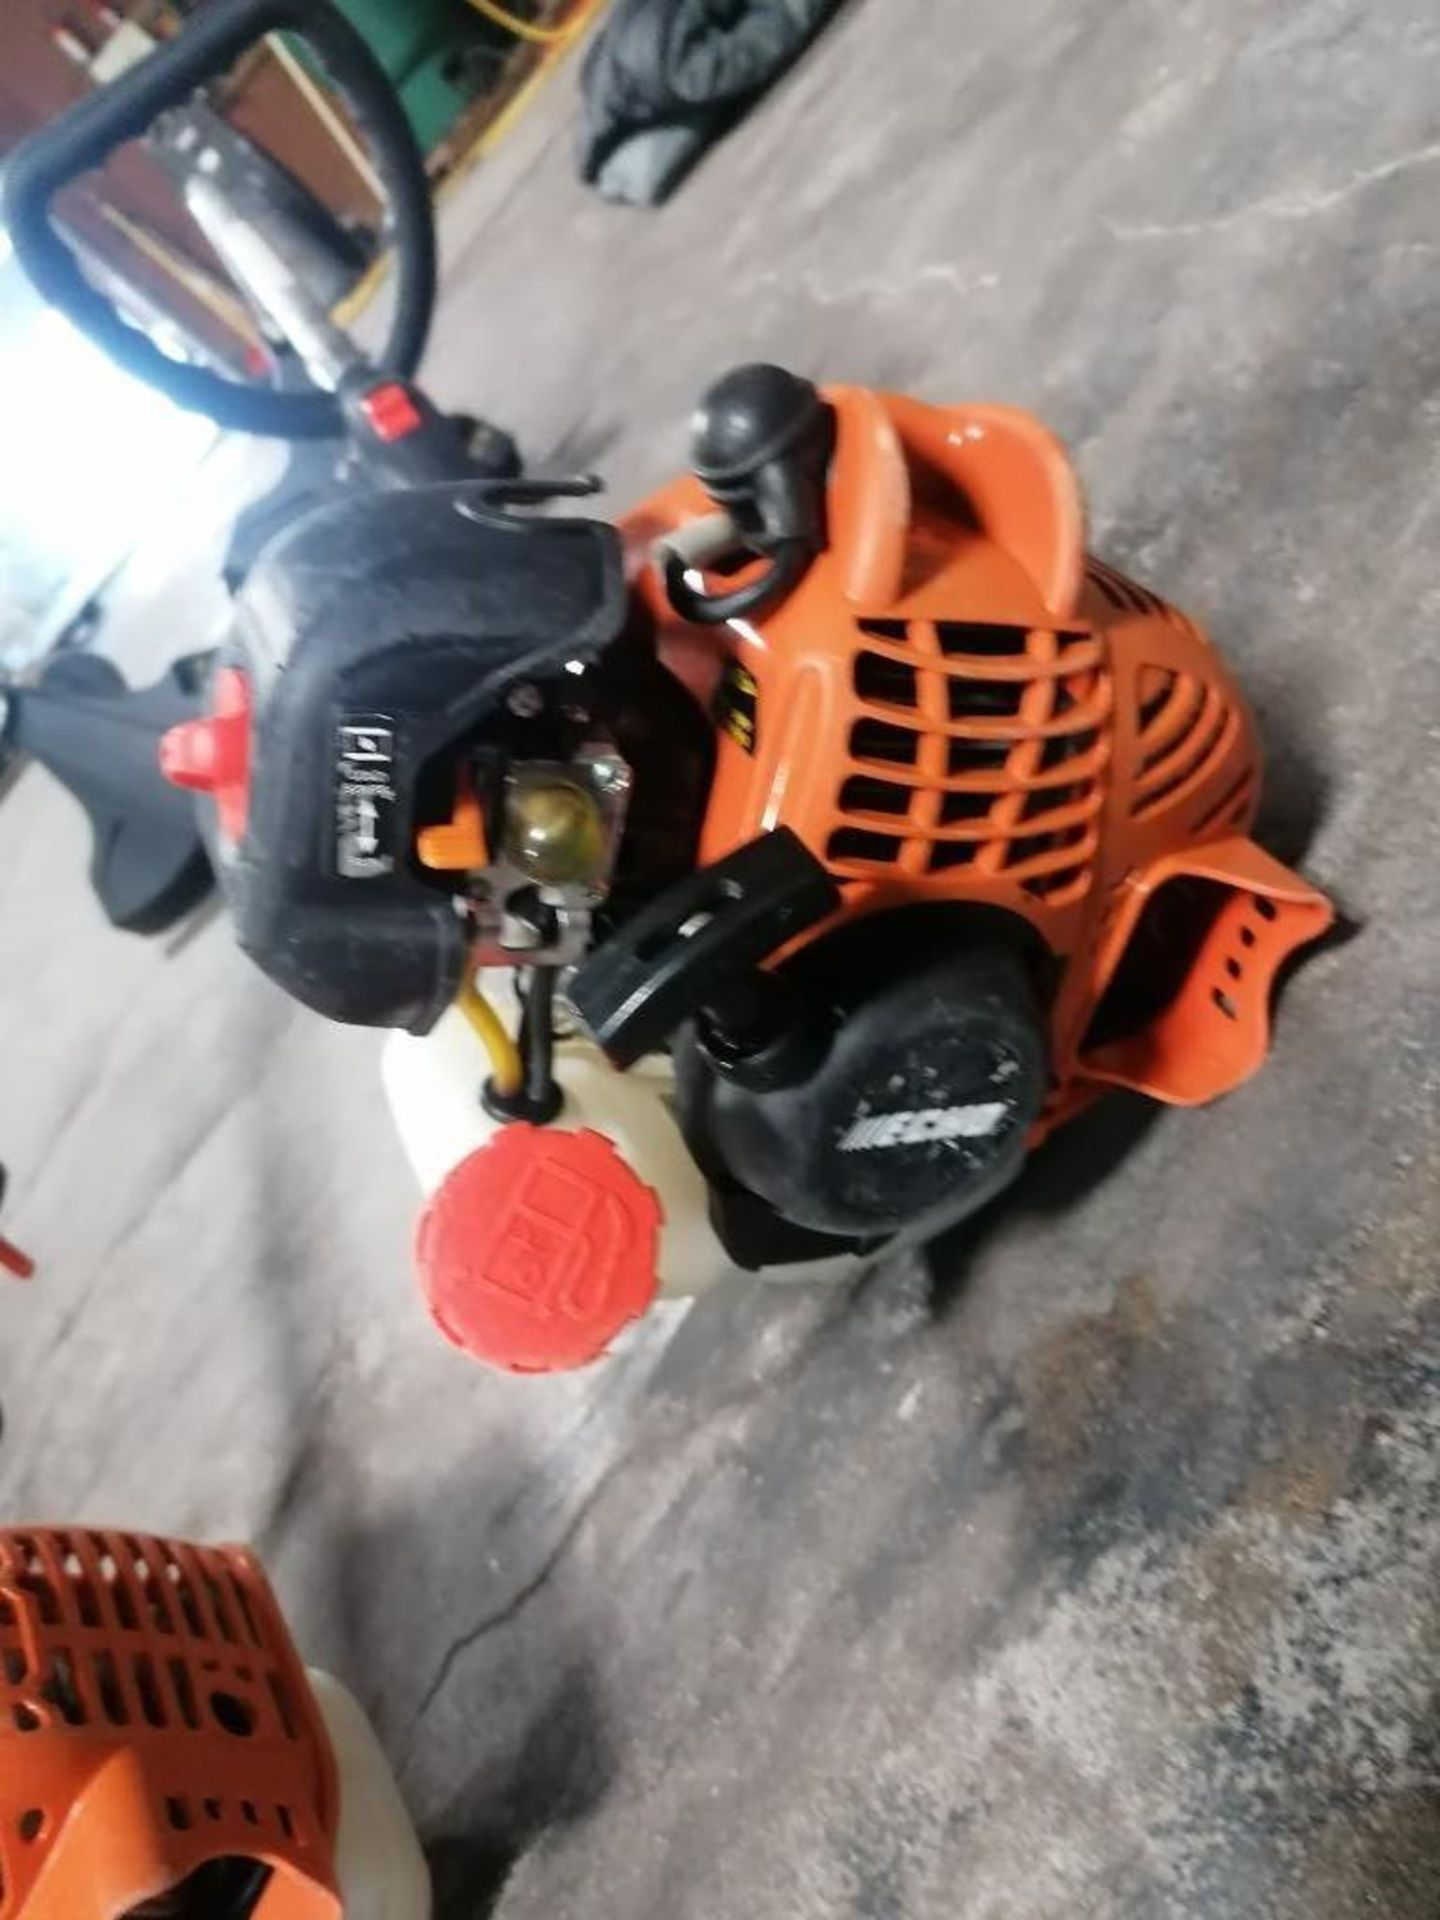 (2) ECHO String Trimmer. Located at 301 E Henry Street, Mt. Pleasant, IA 52641. - Image 3 of 4